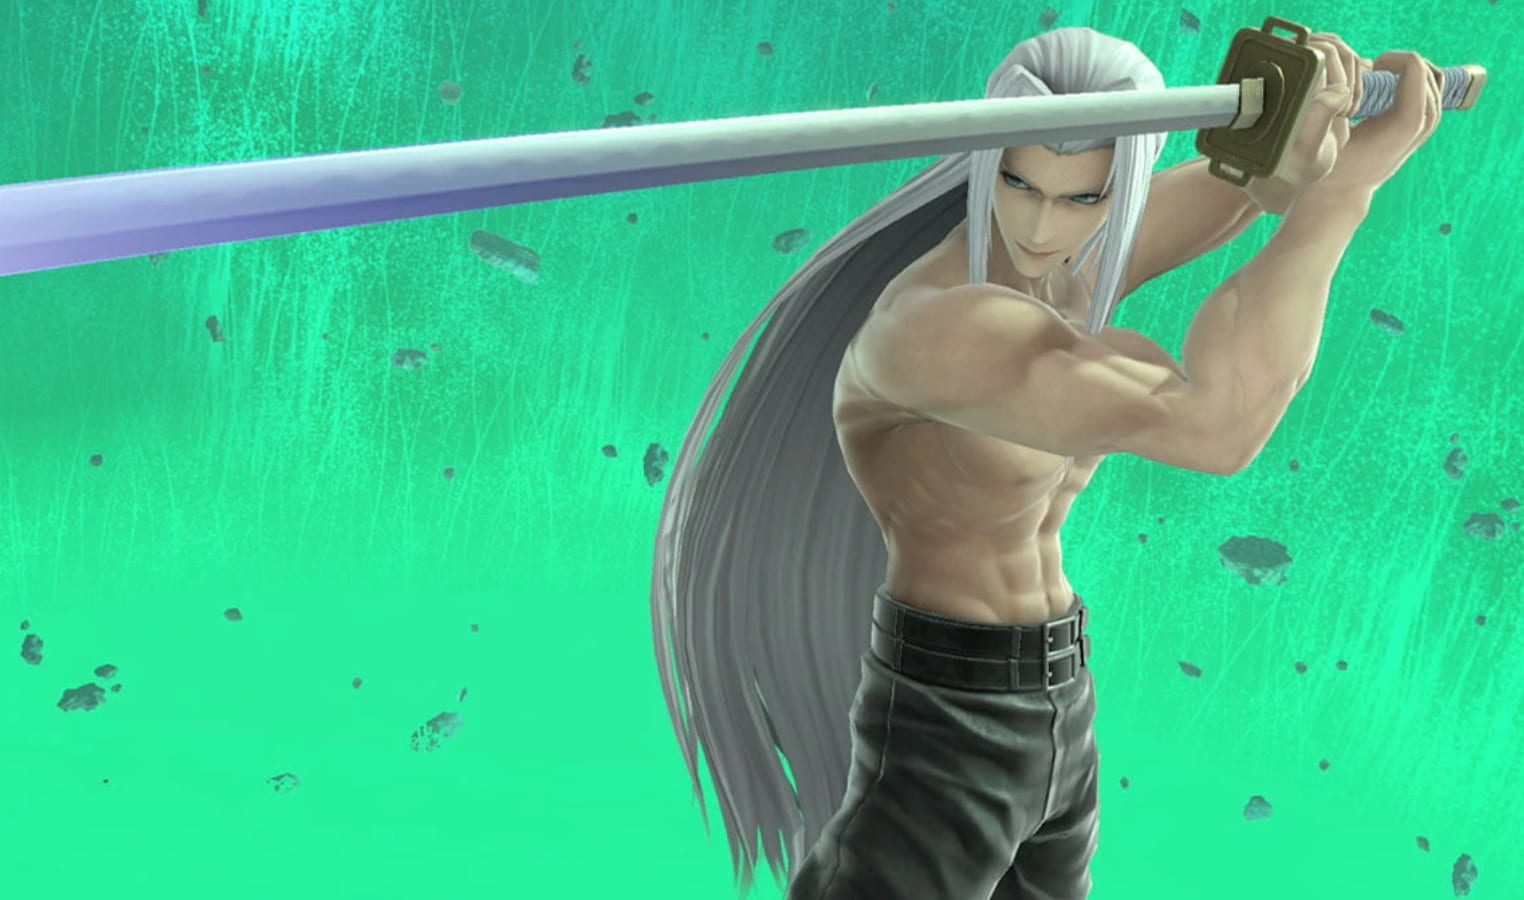 Nicely, Shirtless Sephiroth Is a Factor in Smash Bros. Now 1